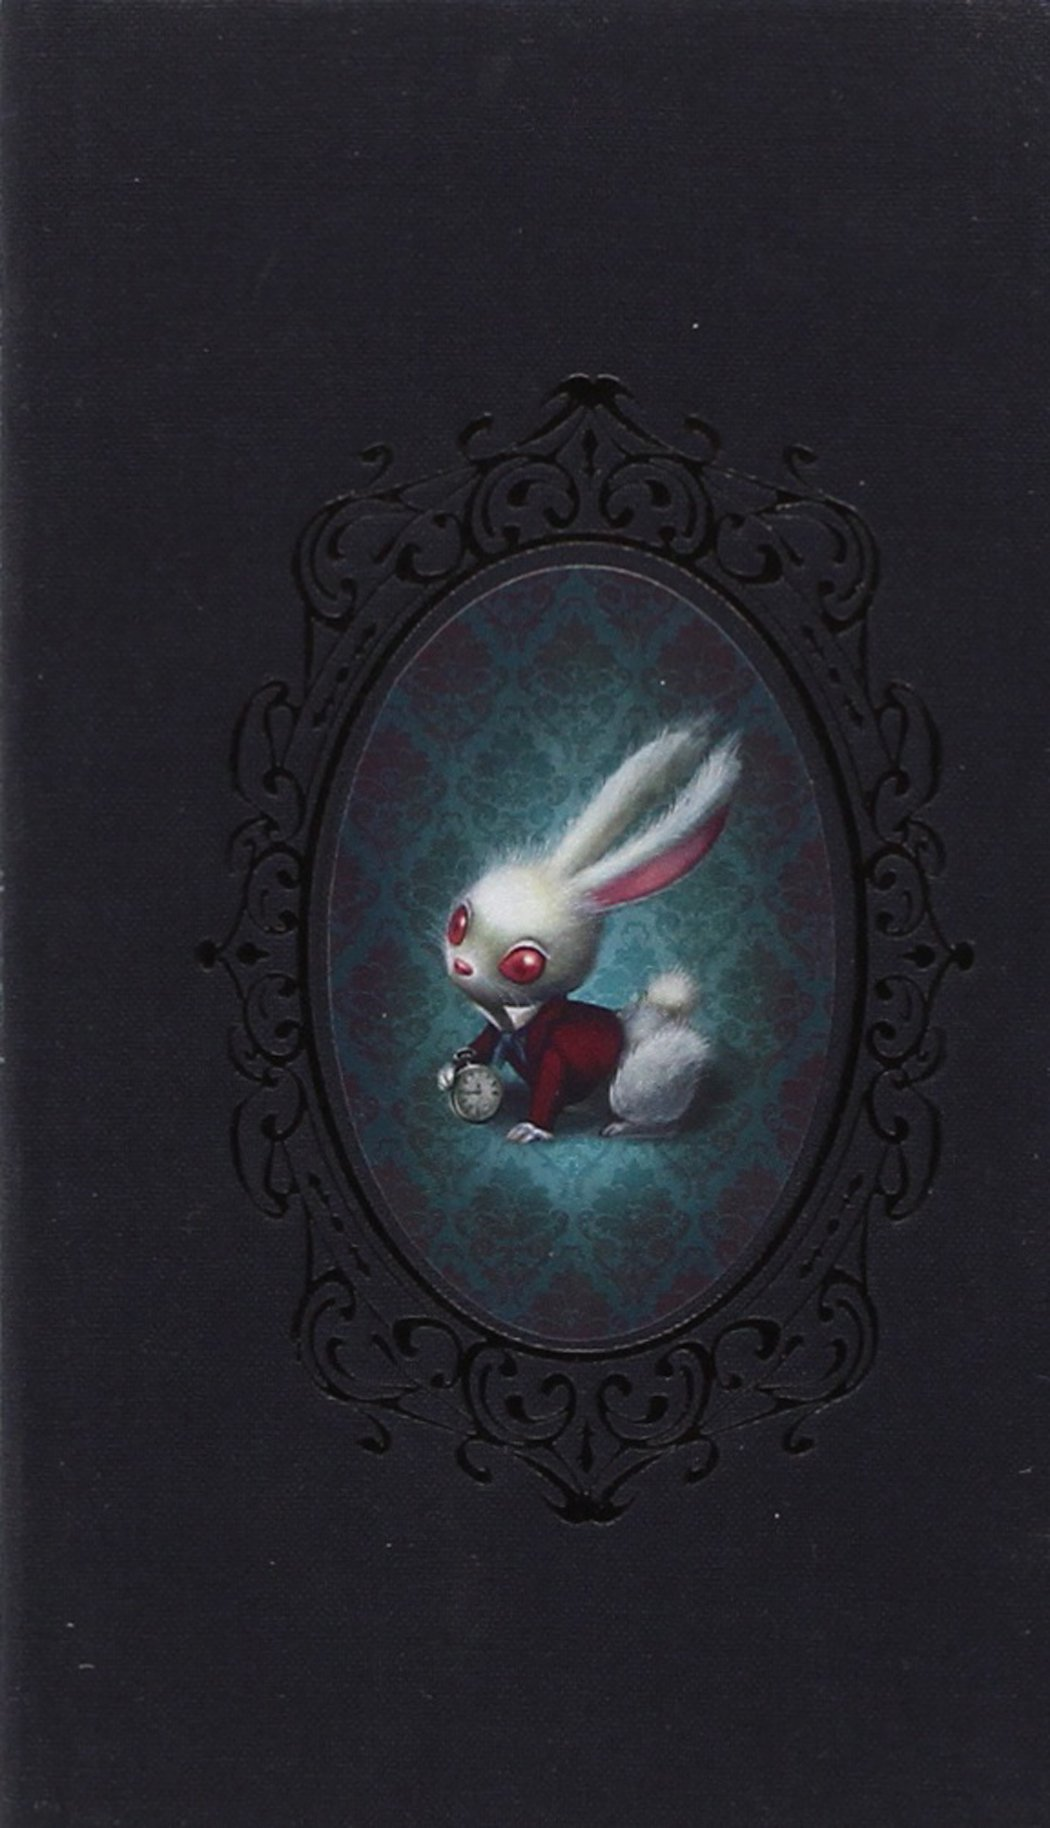 Amazon.com: Agenda 2015 (9782226257994): Benjamin Lacombe: Books